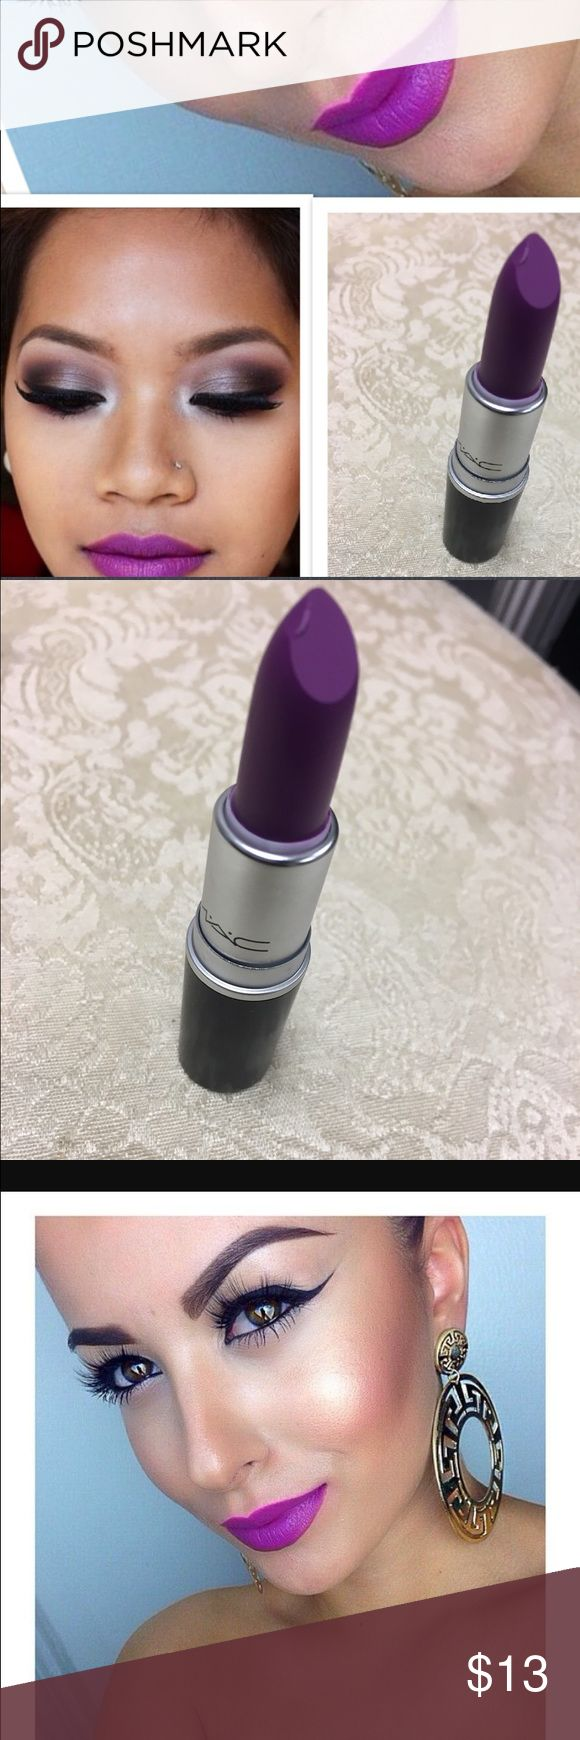 Mac heroine Brand new. Has minor chip as seen in photo. Includes box. never used ☂️ MAC Cosmetics Makeup Lipstick